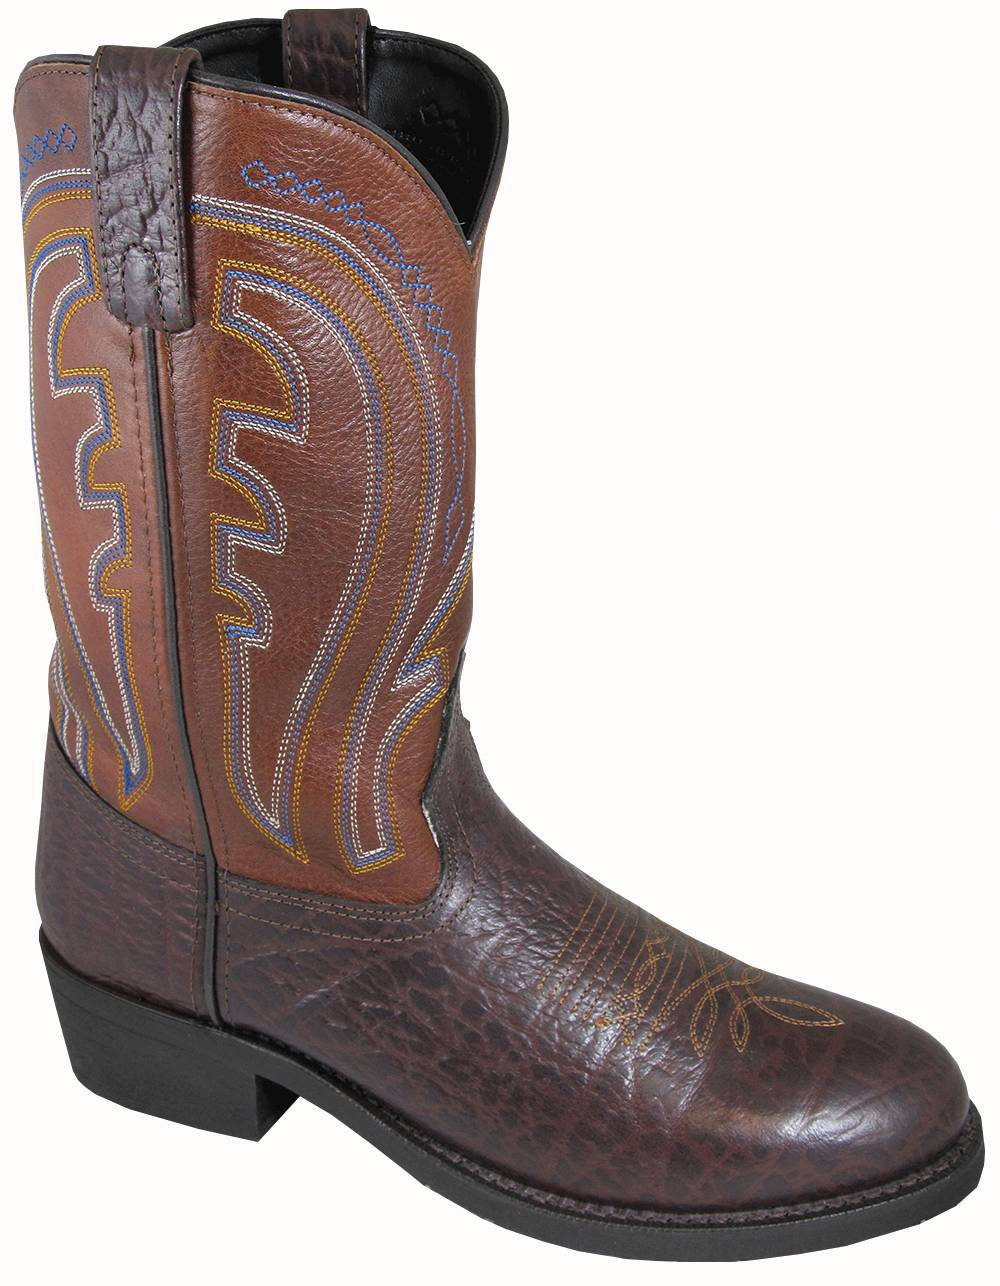 Smoky Mountain Men's Workman Embossed Leather Boot